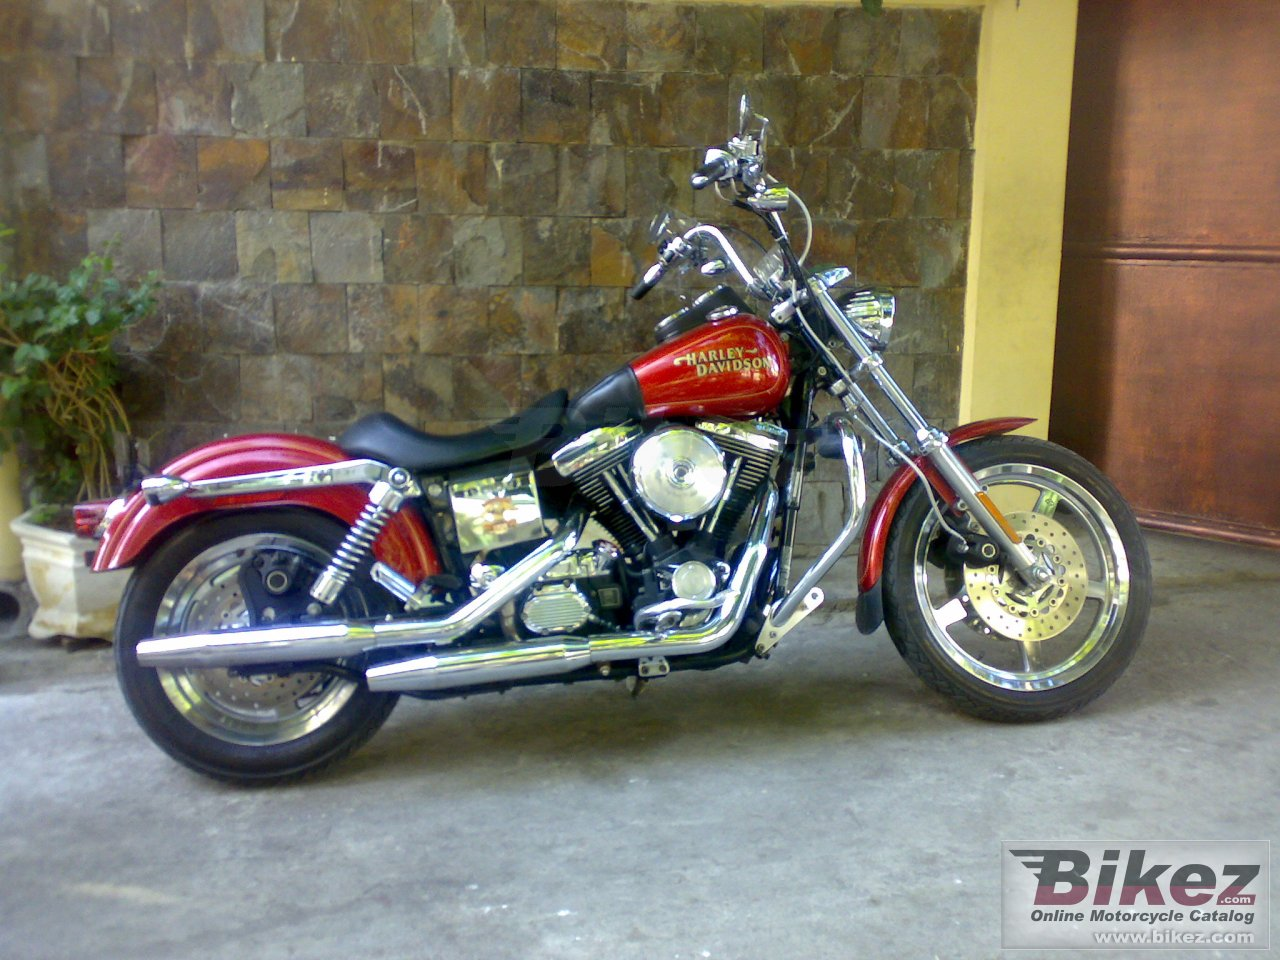 Big  dyna glide low rider picture and wallpaper from Bikez.com